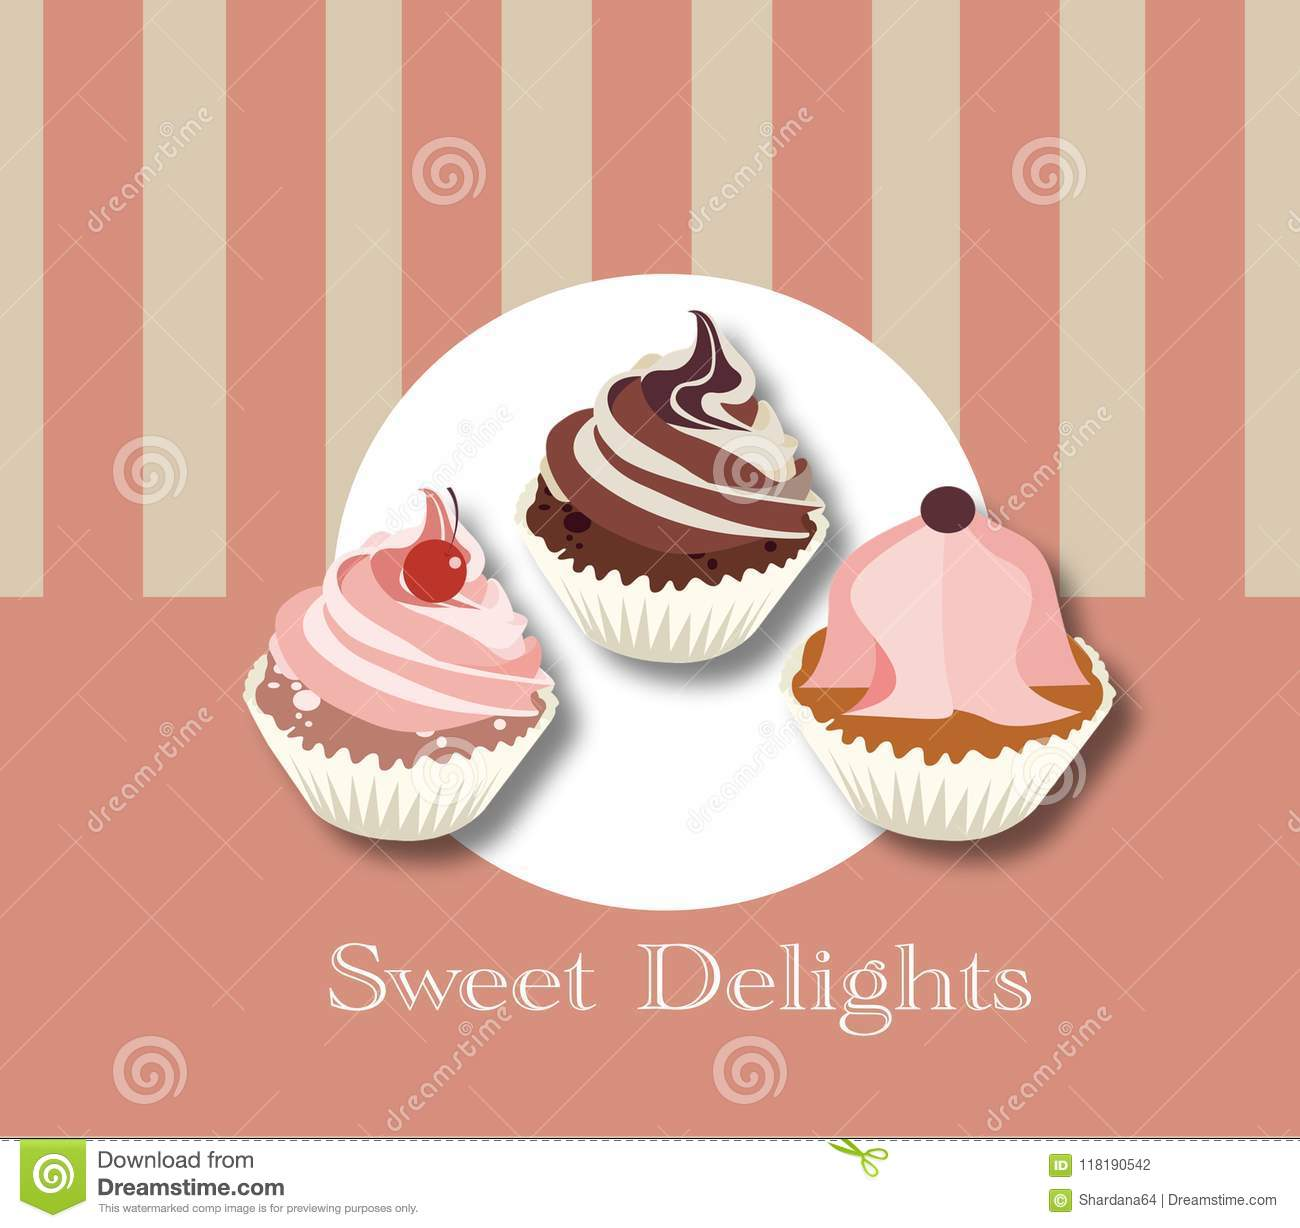 Sweet delights for moments of tenderness